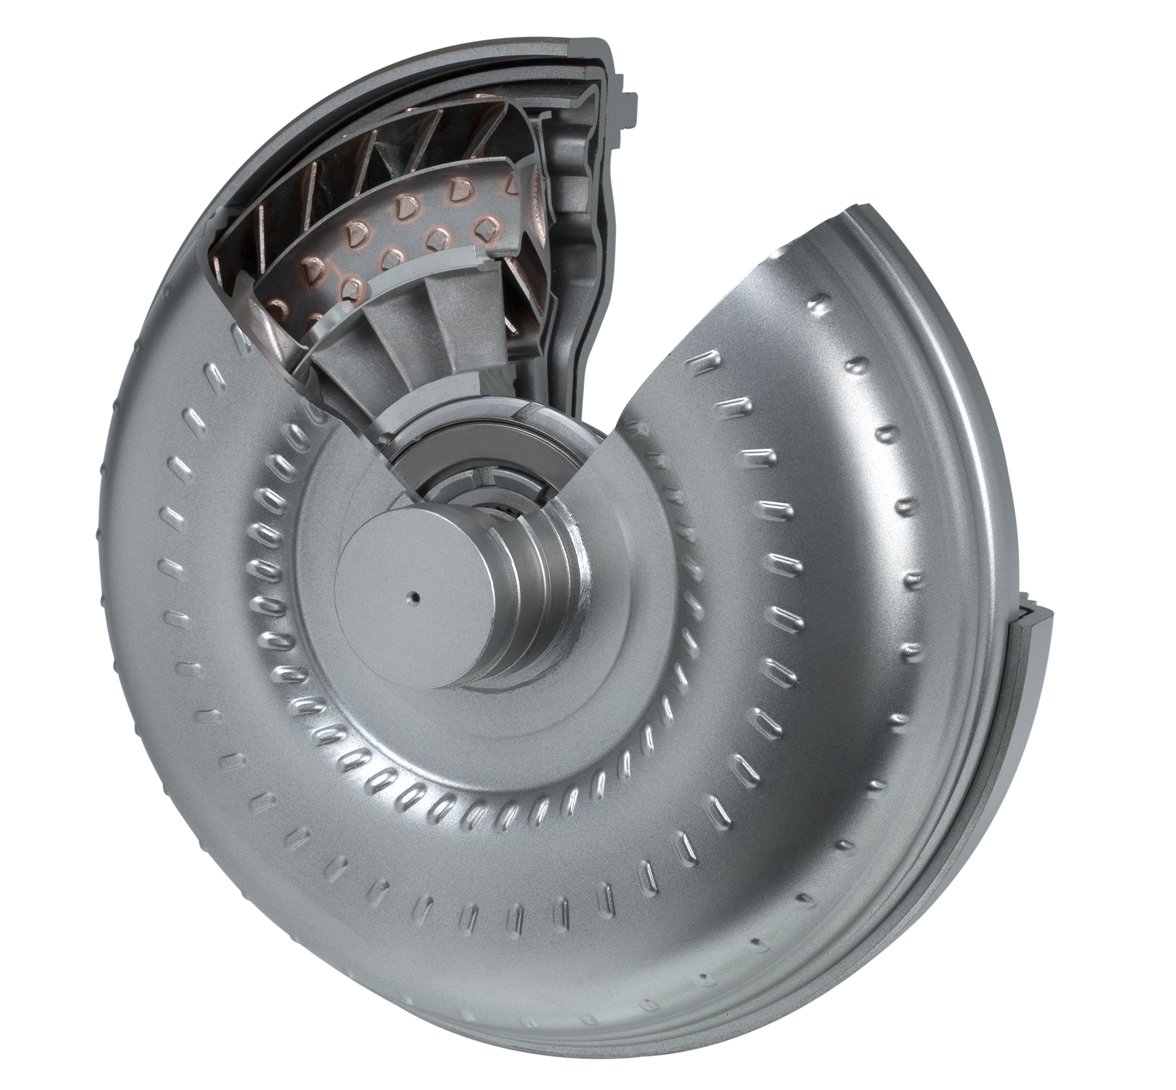 The Valeo Torque Converter helps reduce CO? emissions and enhances performance for automatic transmissions.